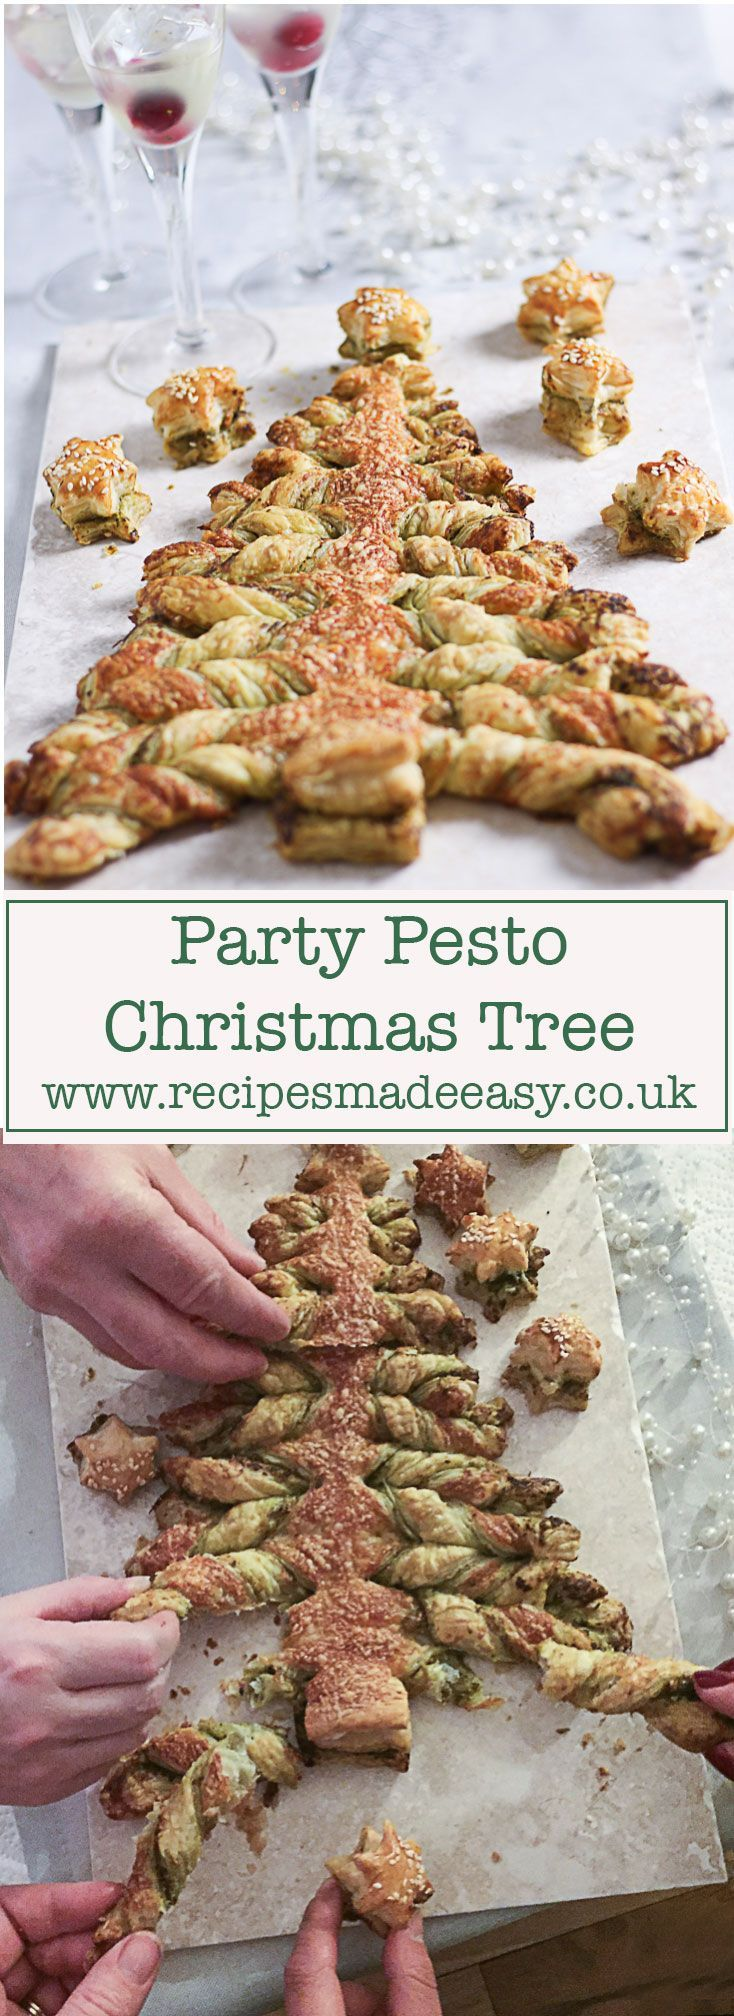 a simple to make pastry centre piece for your festive party and a fizzy drink to help make it go with a swing.